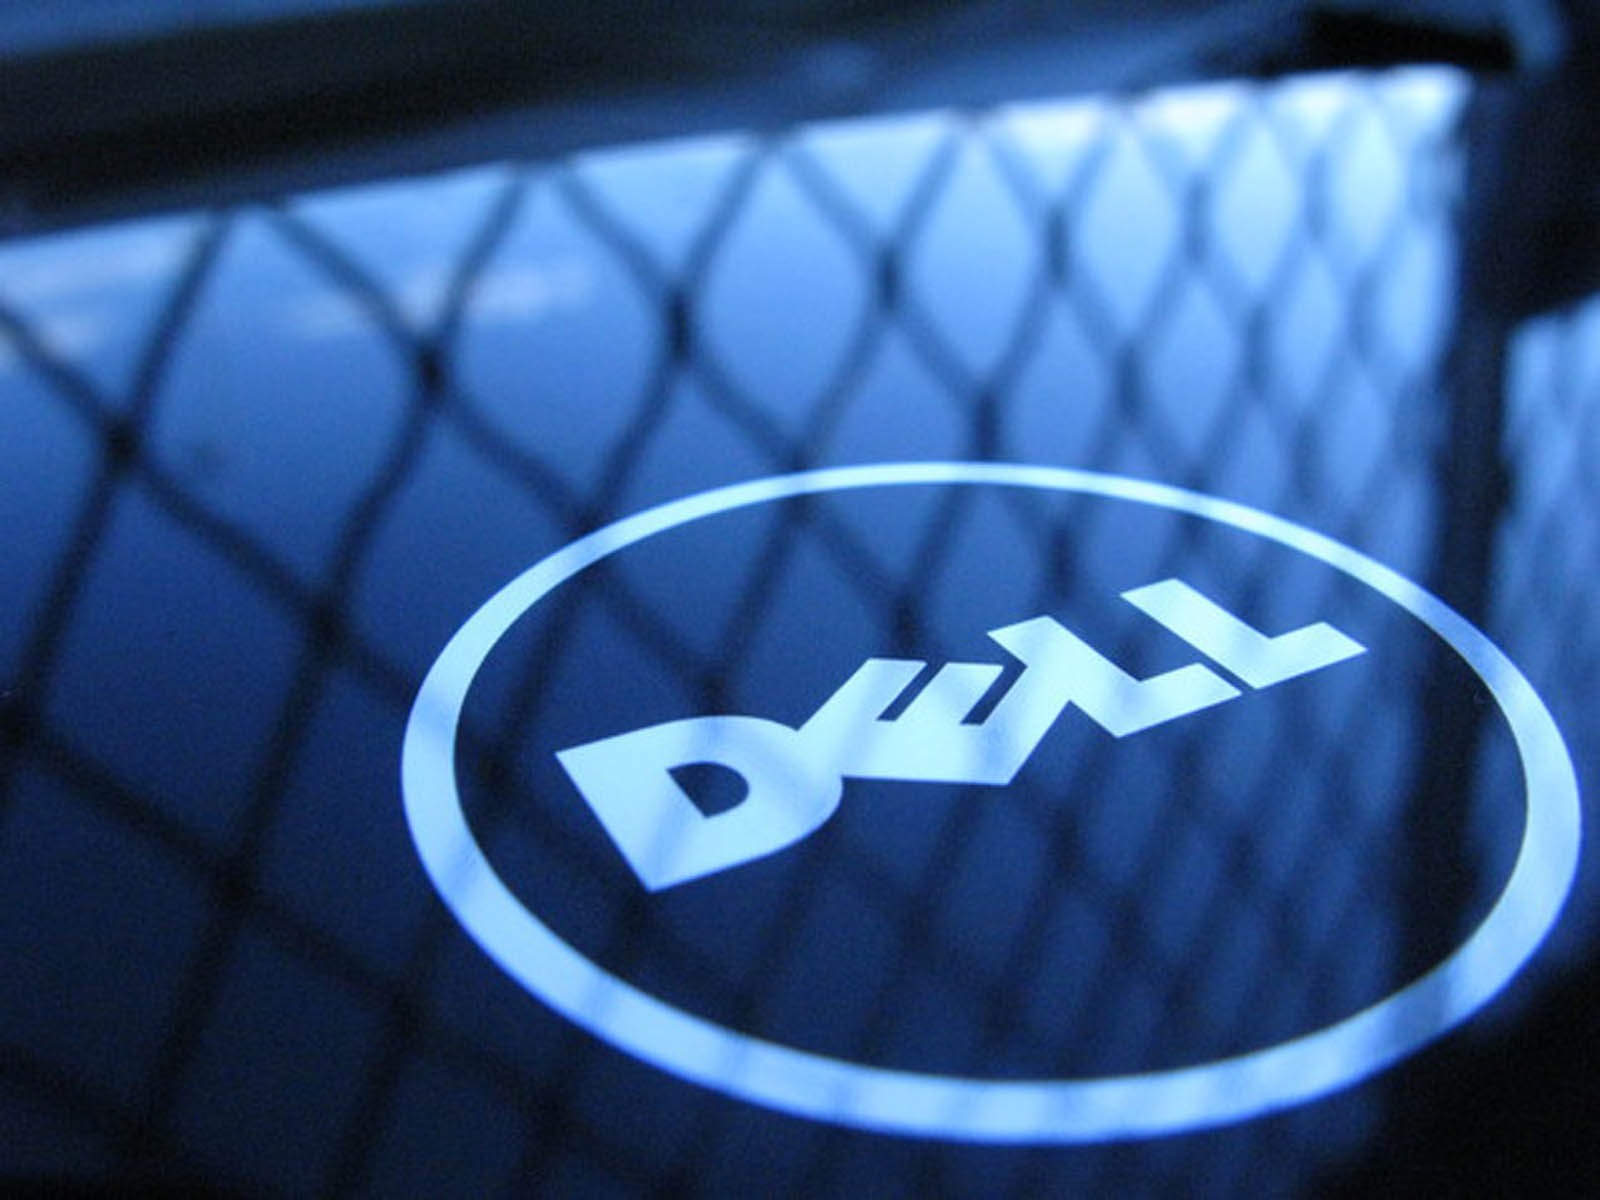 Dell Wallpaper: Wallpaper: Dell Desktop Wallpapers